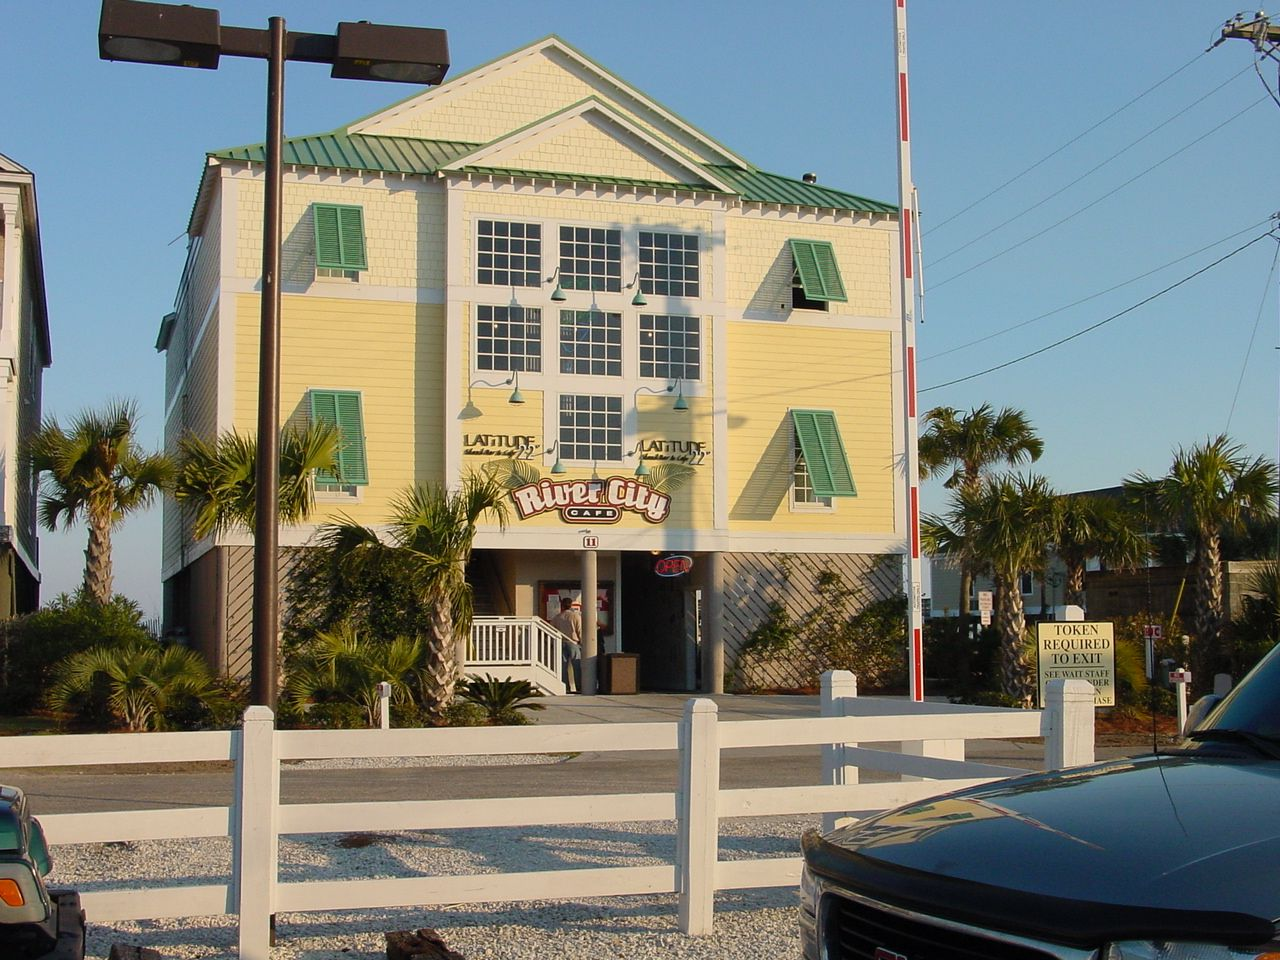 River City Cafe In Surfside On The Beach Surfside Beach Myrtle Beach South Carolina Myrtle Beach